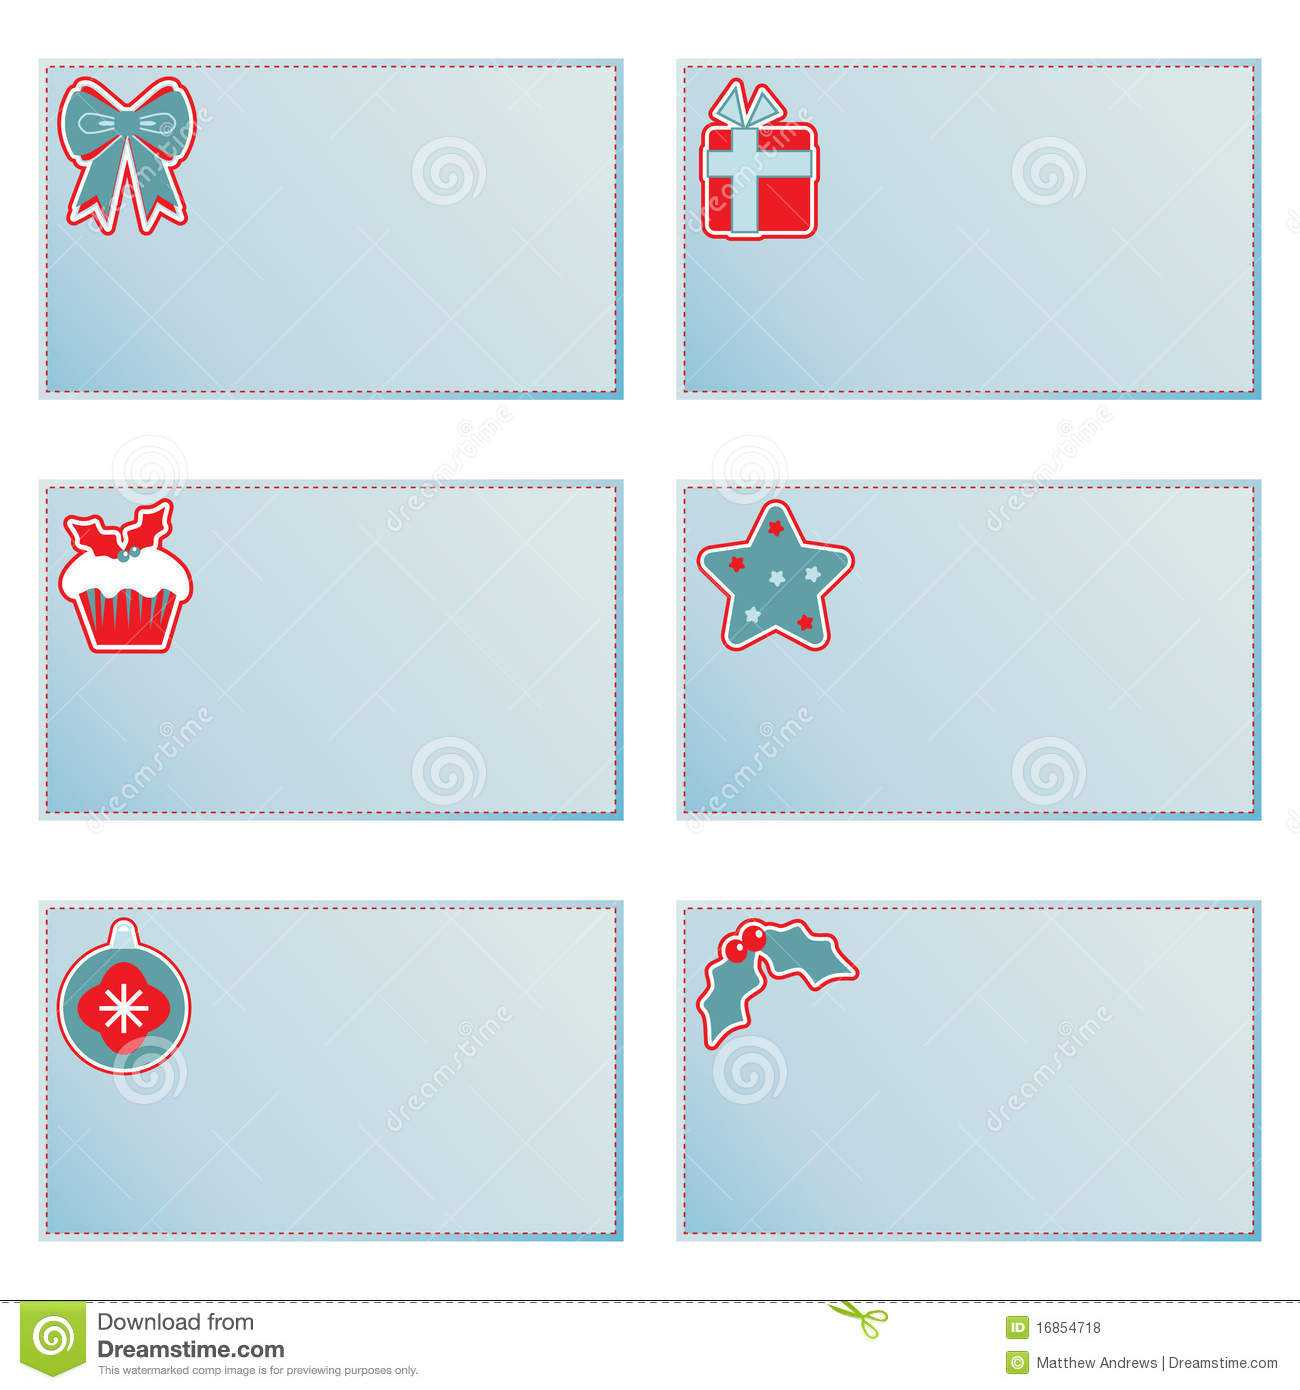 Christmas Note Cards Stock Vector. Illustration Of With Christmas Note Card Templates